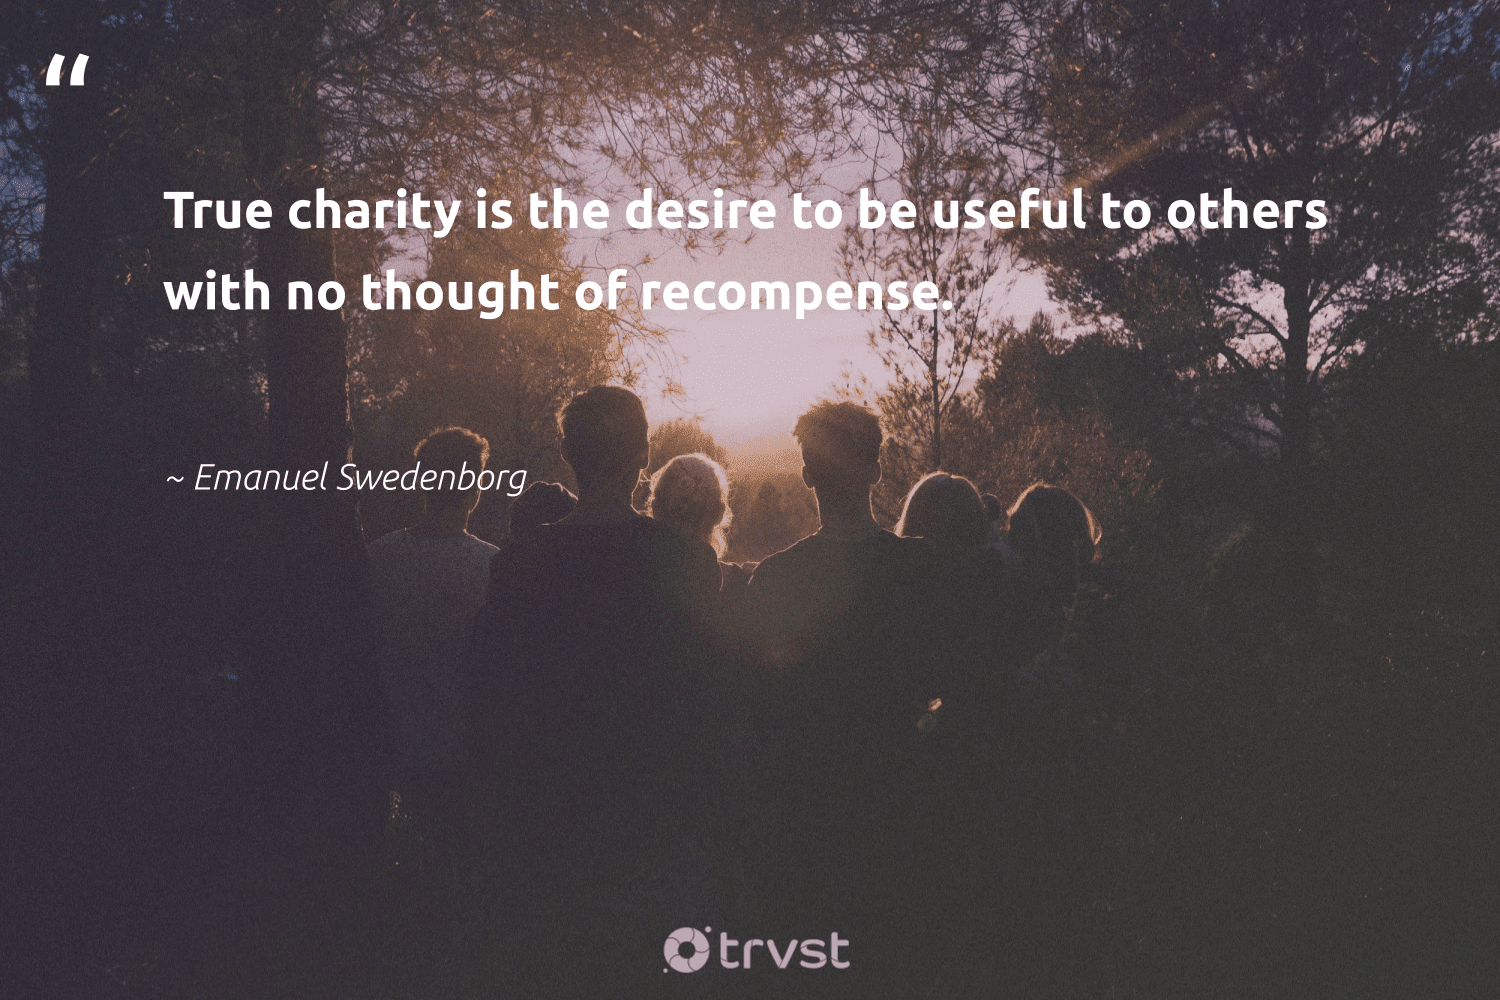 """""""True charity is the desire to be useful to others with no thought of recompense.""""  - Emanuel Swedenborg #trvst #quotes #dogood #dosomething #strongercommunities #impact #bethechange #dotherightthing #giveback #thinkgreen #equalopportunity #socialimpact"""